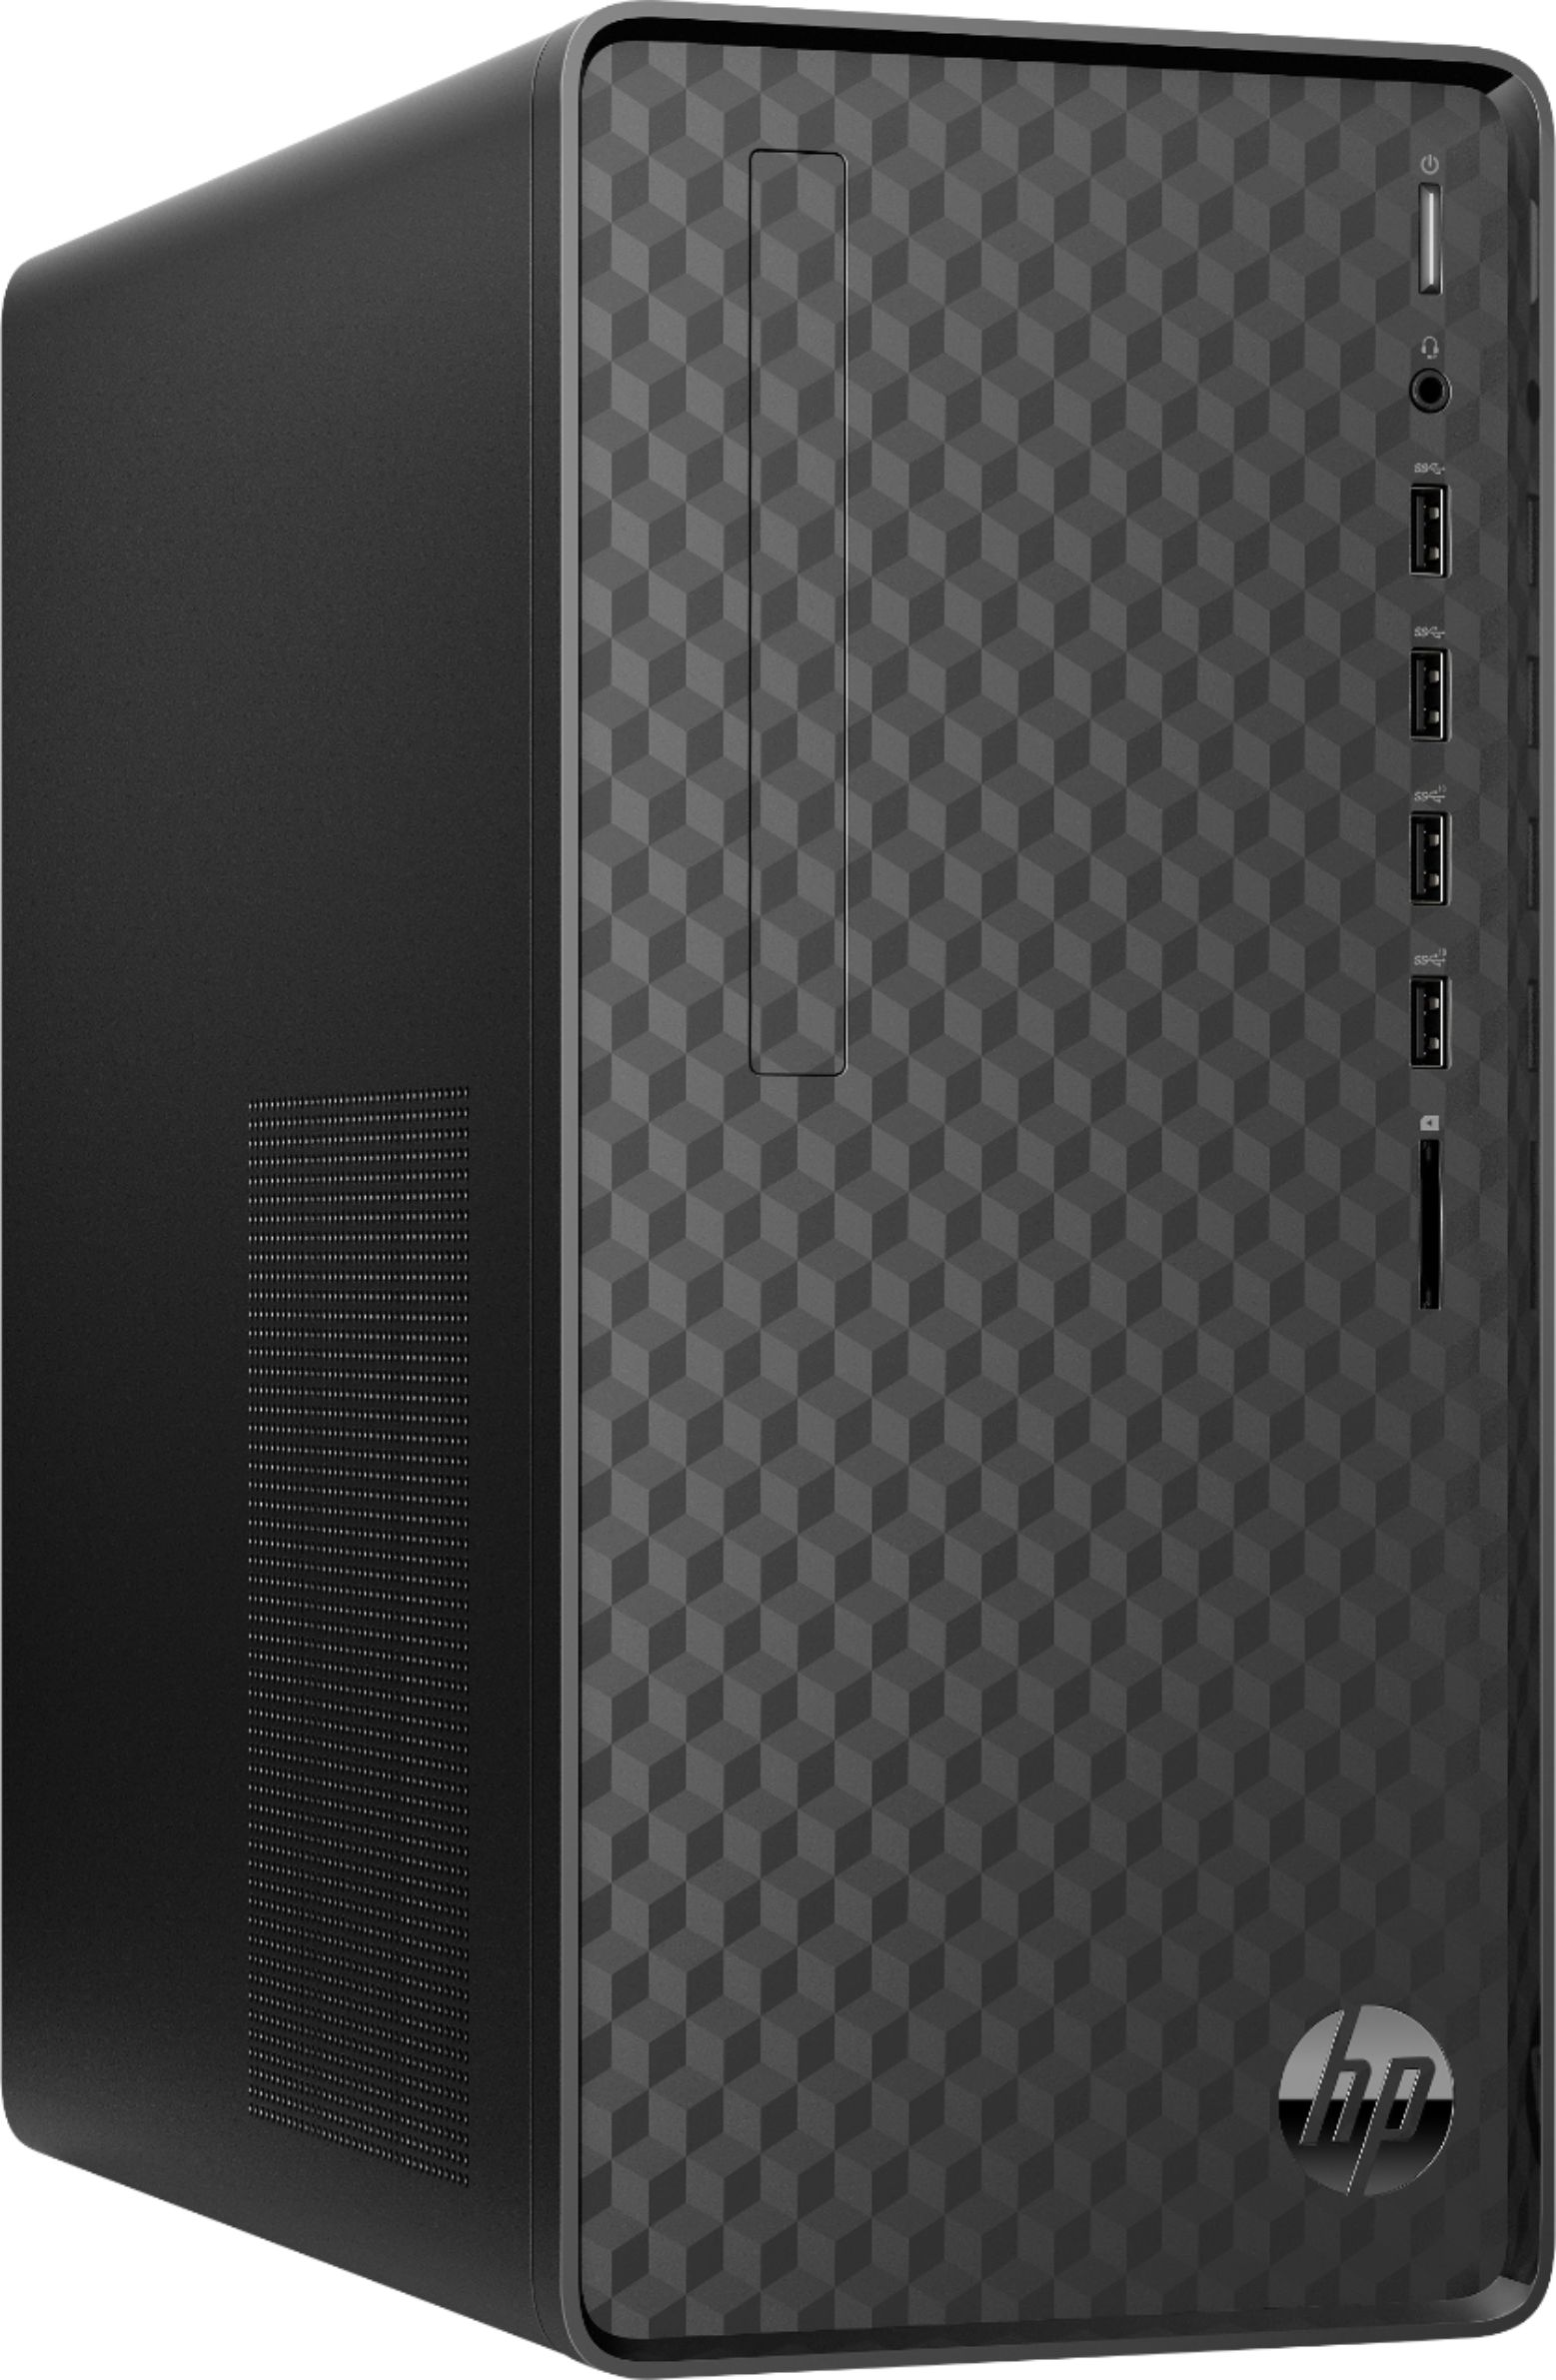 Angle Zoom. HP - Desktop - Intel core i7 - 8GB Memory - 256GB SSD - Black.